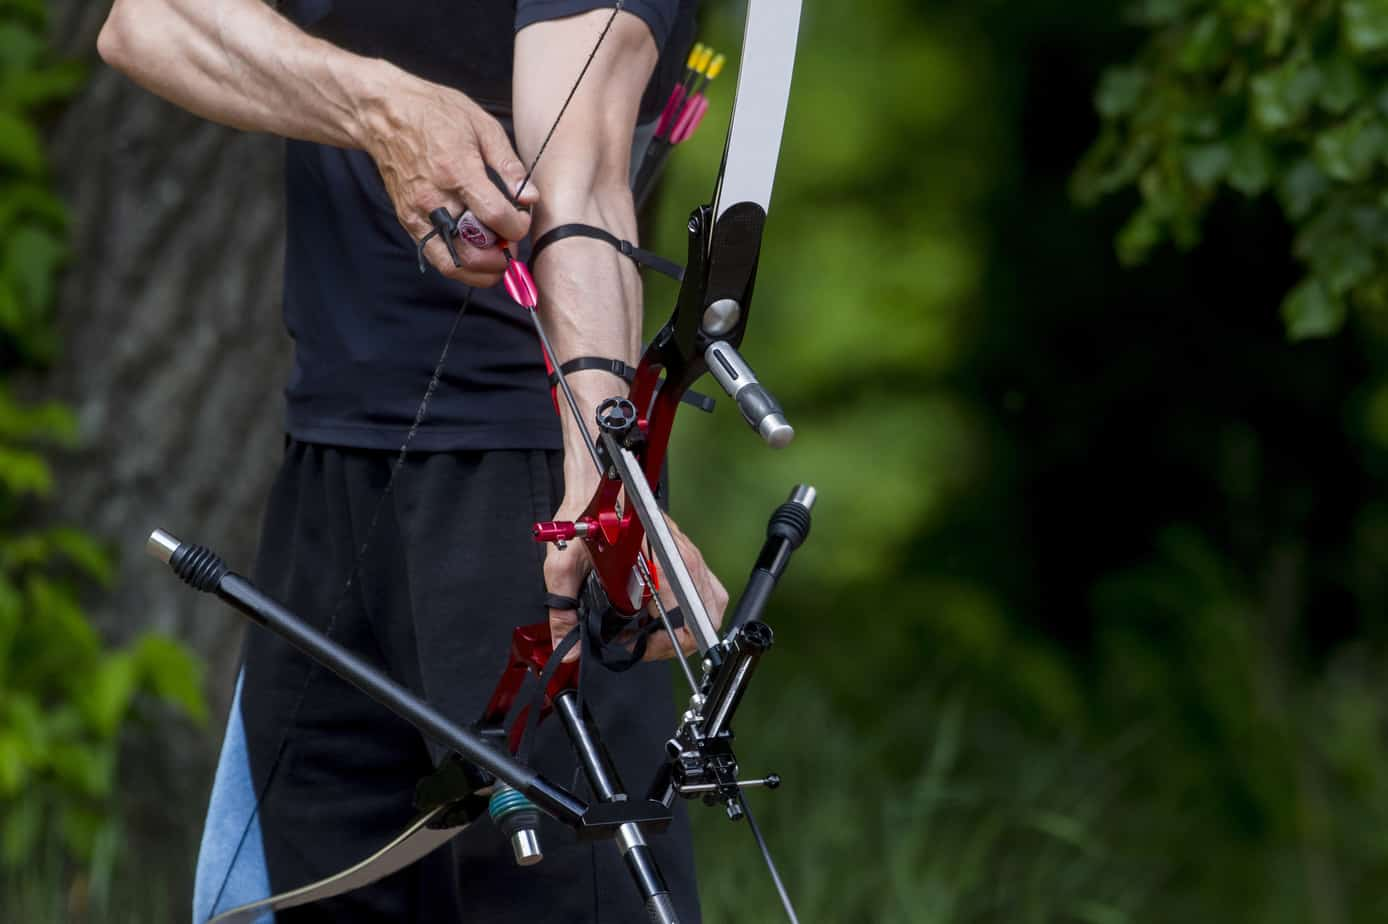 Archer pulls on the sport bow string, taking aim at his target at the competition. Male, concentrated.